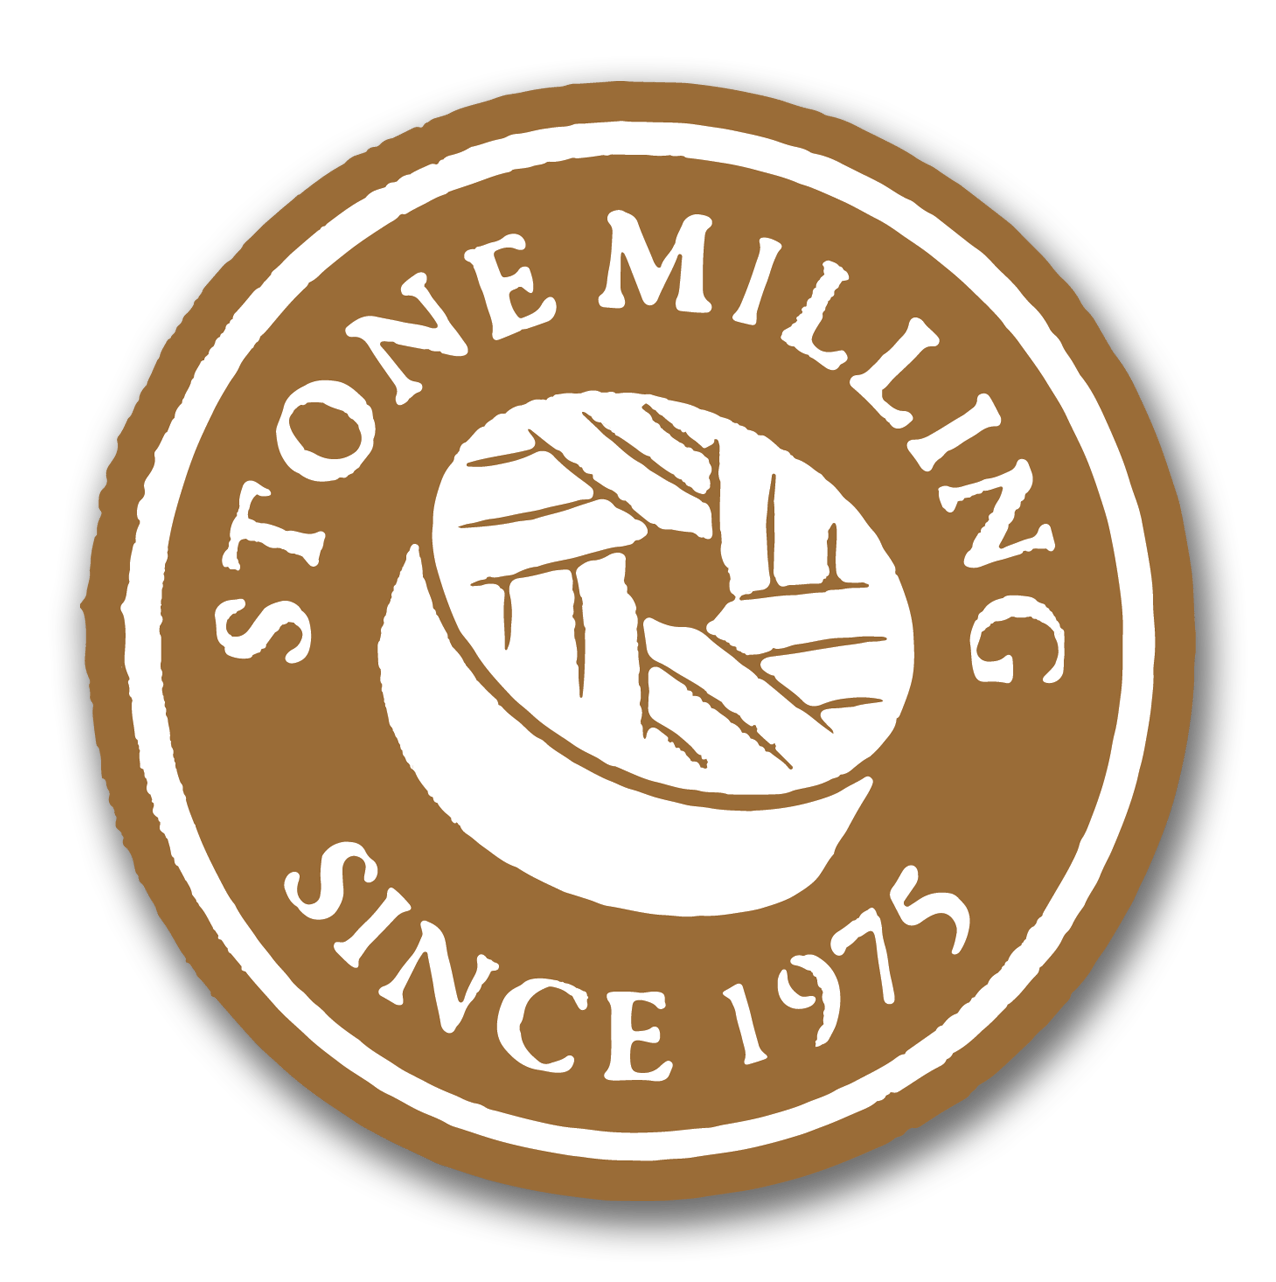 stone_milling_since